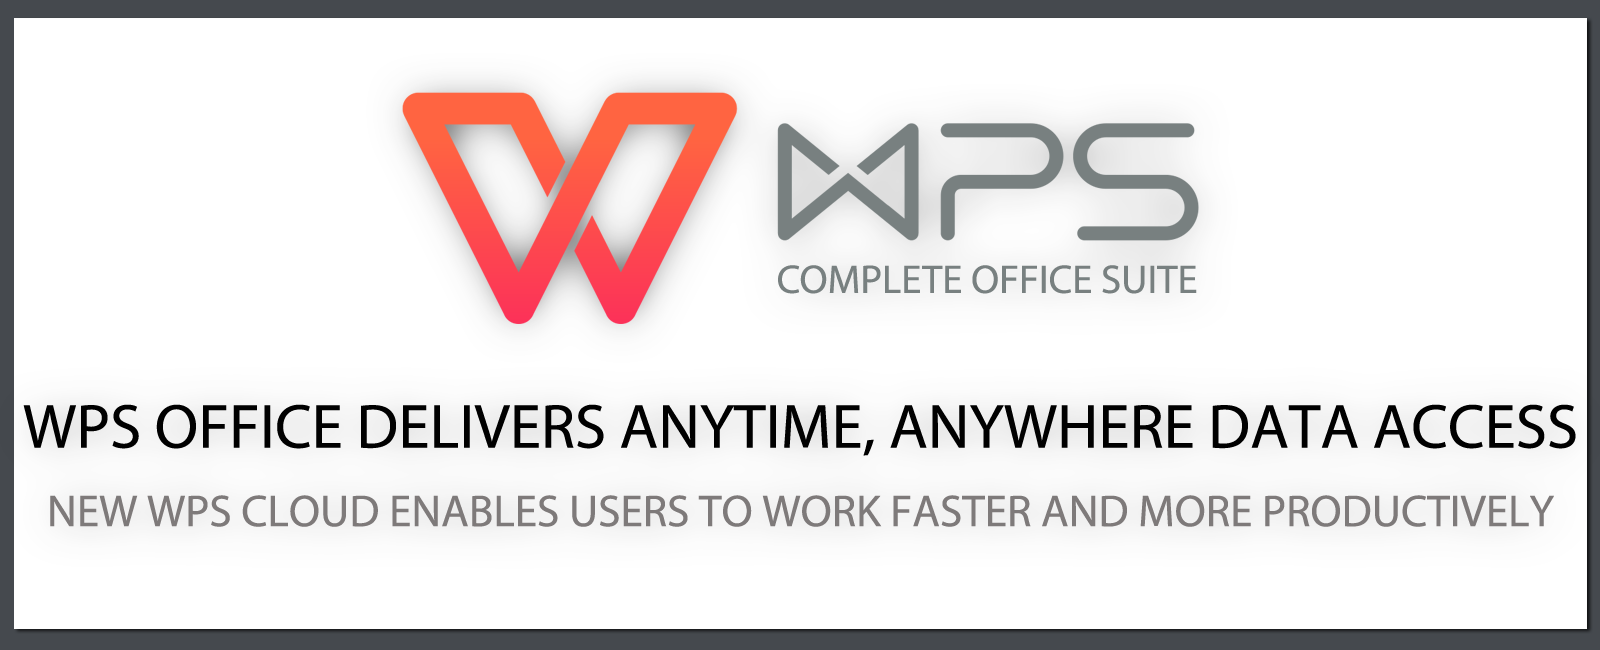 WPS Office Delivers Anytime, Anywhere Data Access to Popular